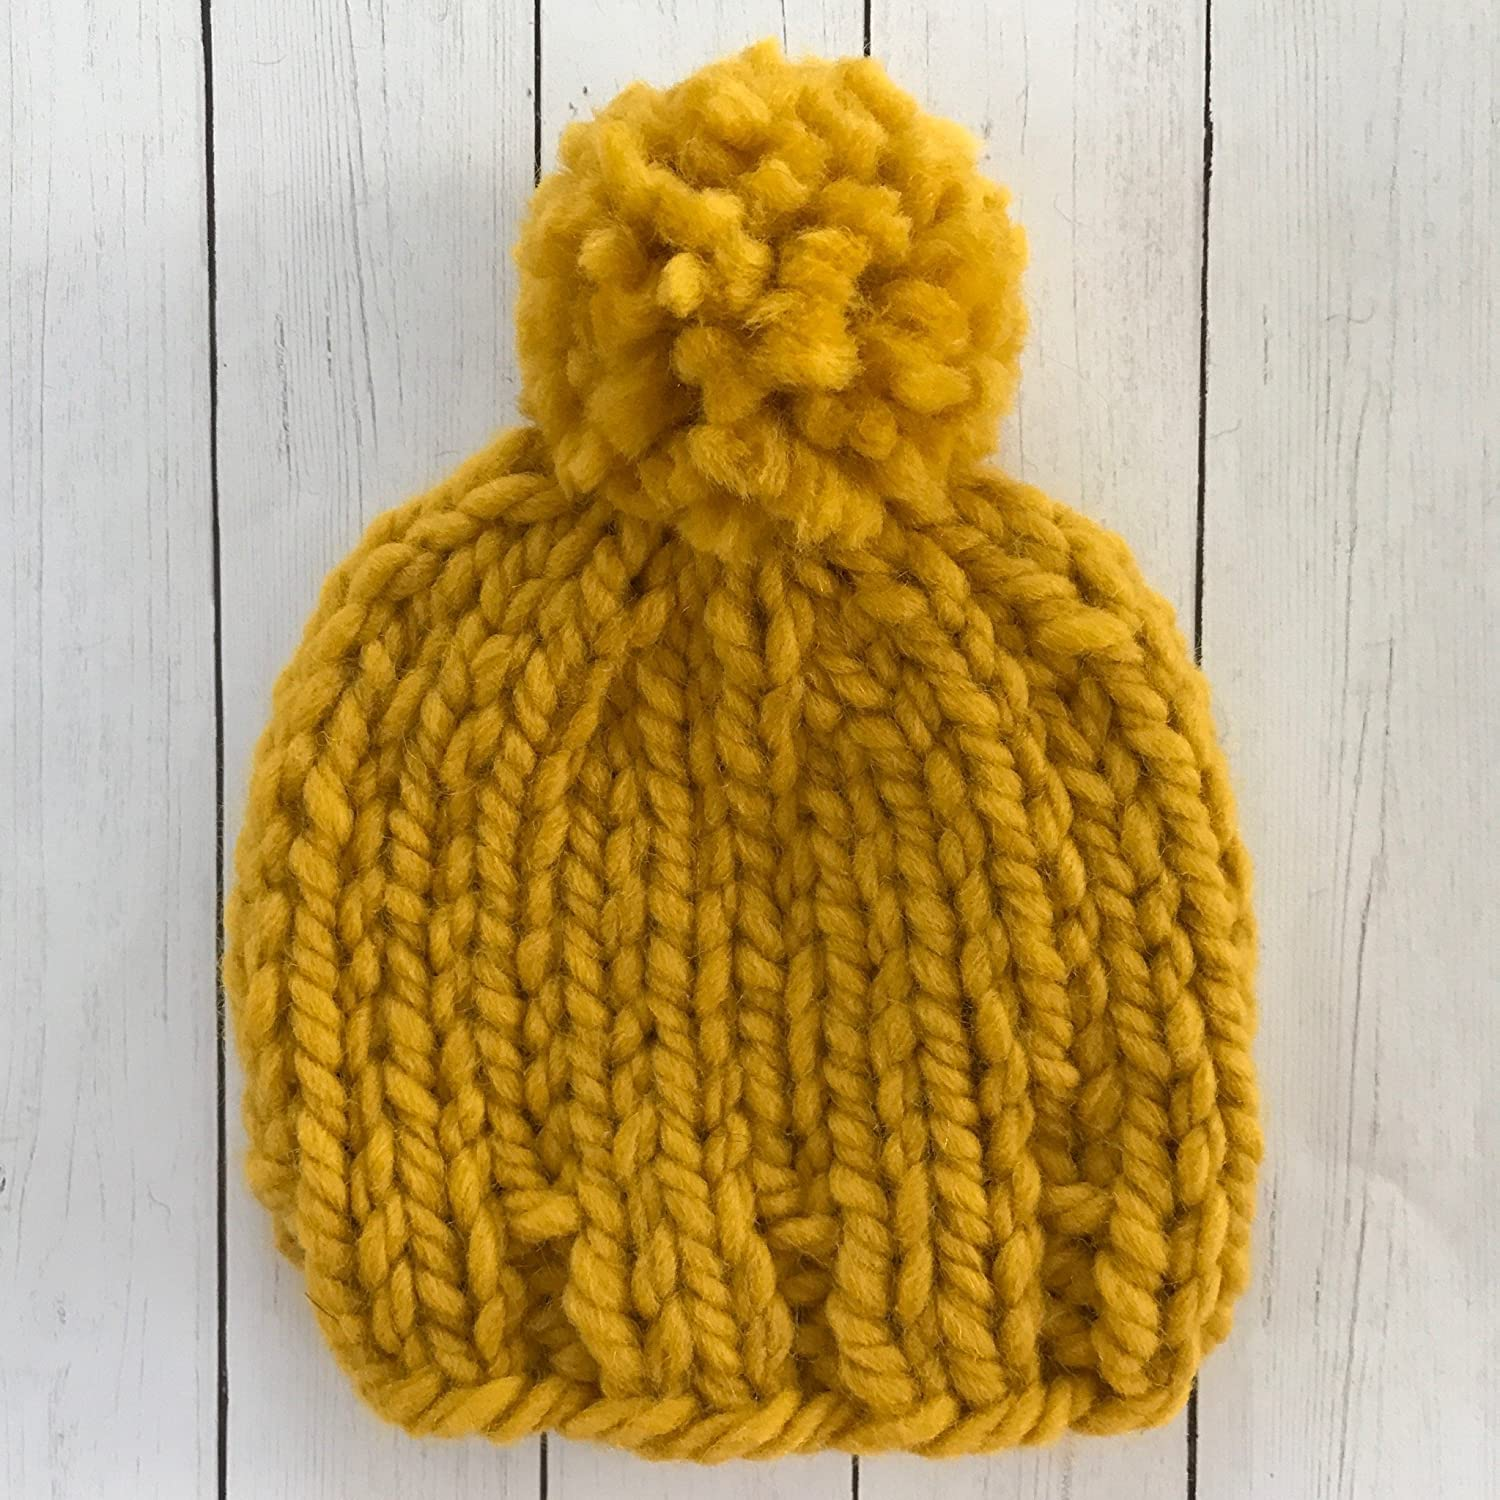 Amazon.com  Mustard Yellow Baby Beanie - 0 to 3 Months  Handmade 212e9b35554